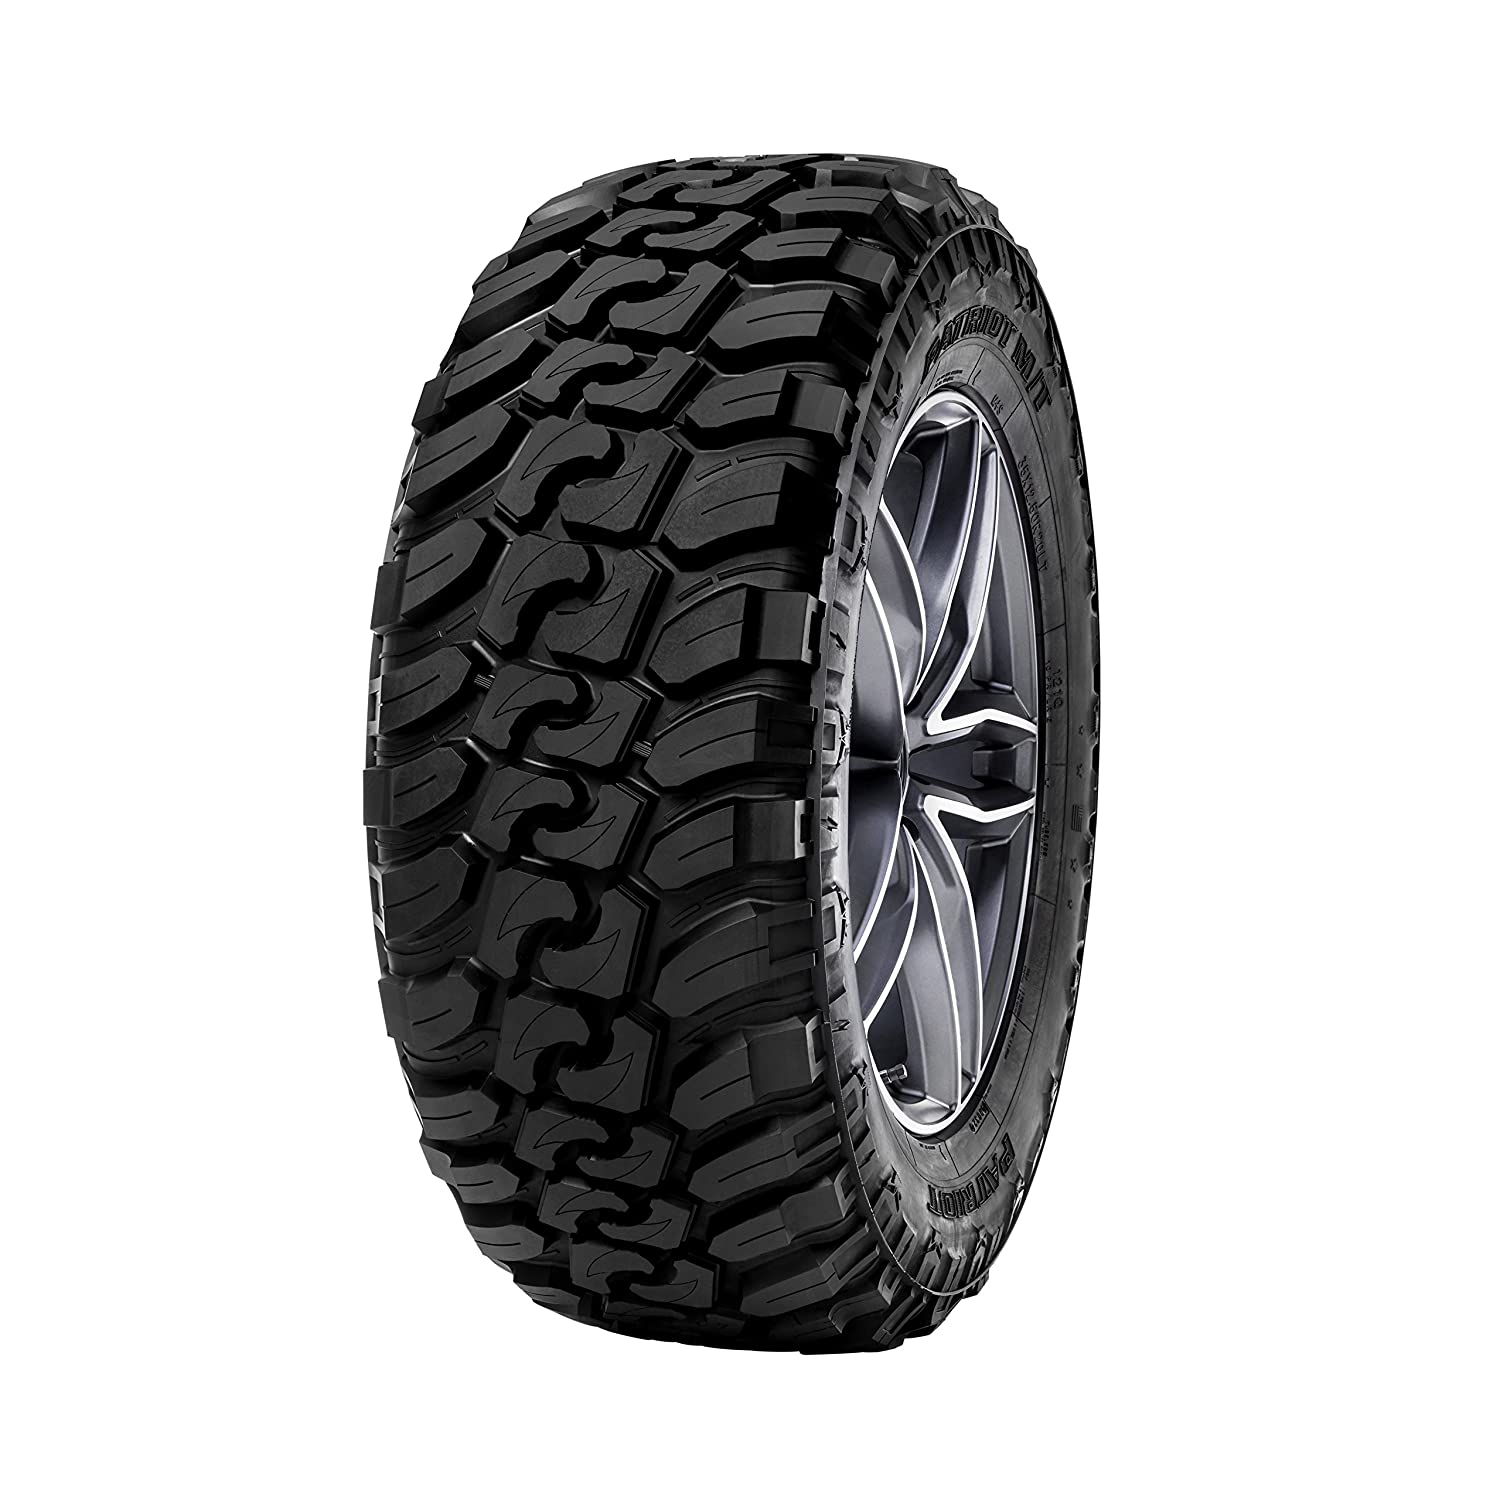 Patriot Tires MT All-Terrain Radial Tire - 35x12.50R18LT 123Q Omni United RFD0010